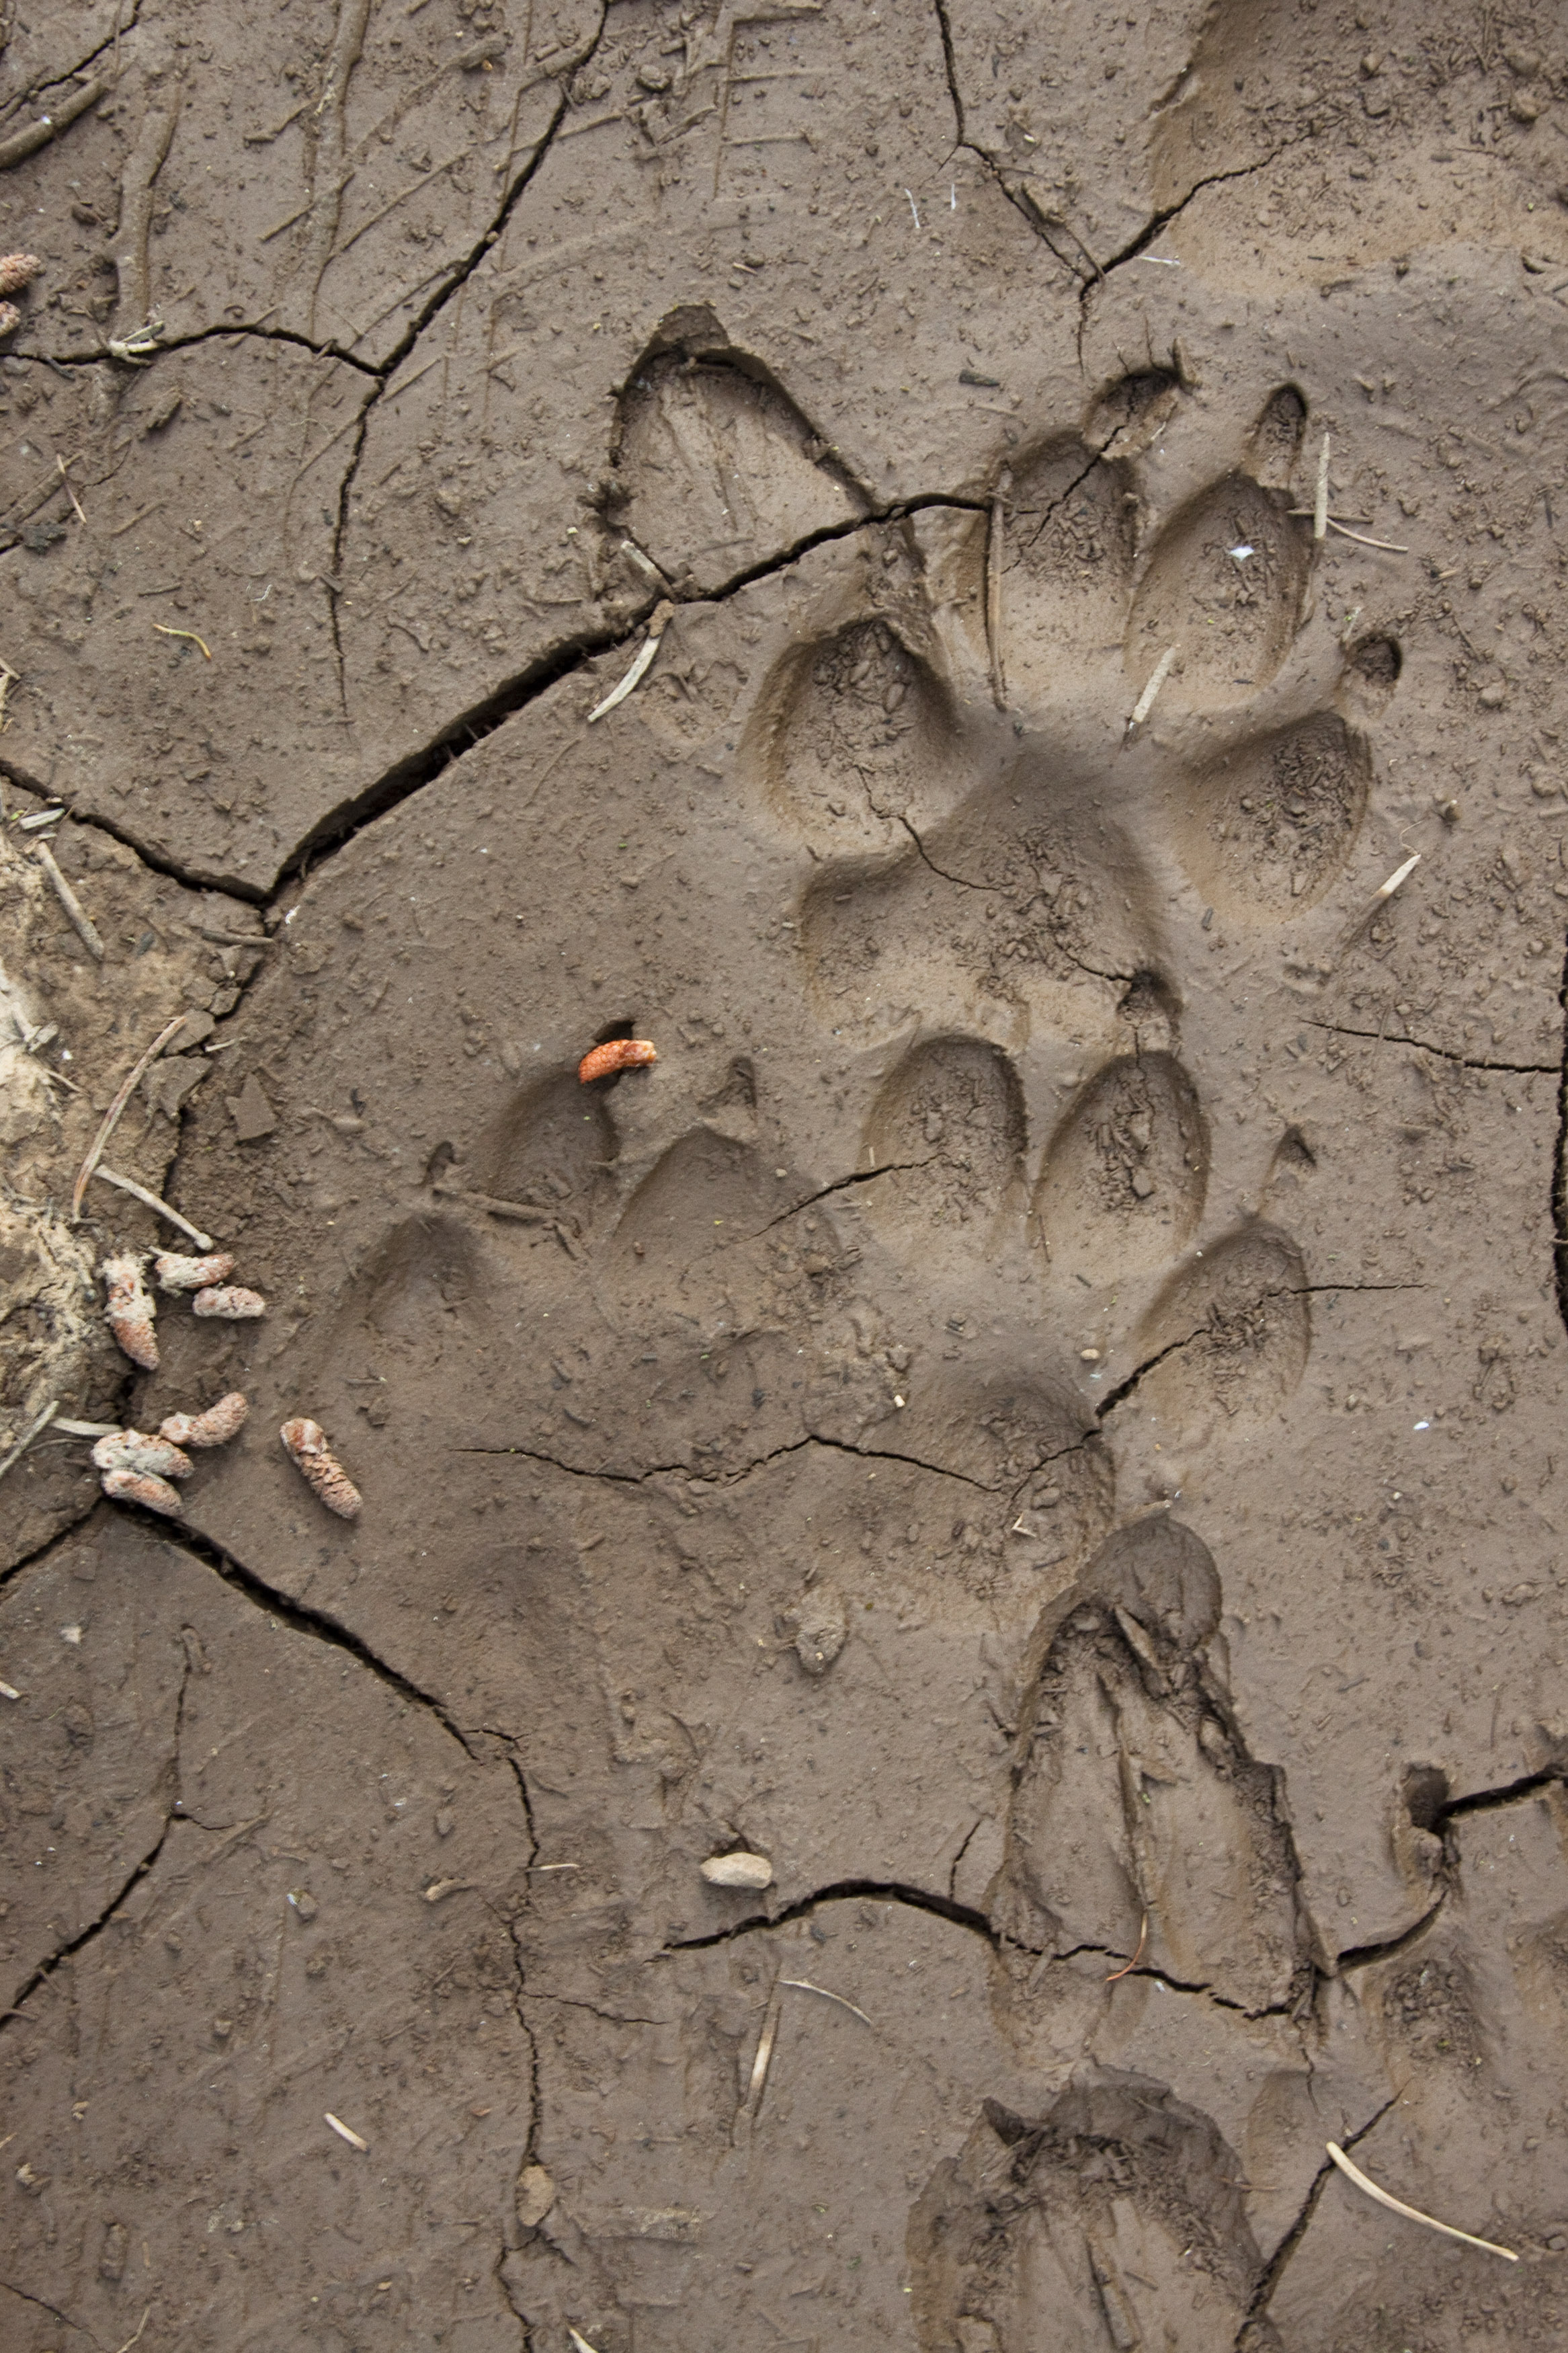 Wolf Tracks, Photo by David Moskowitz